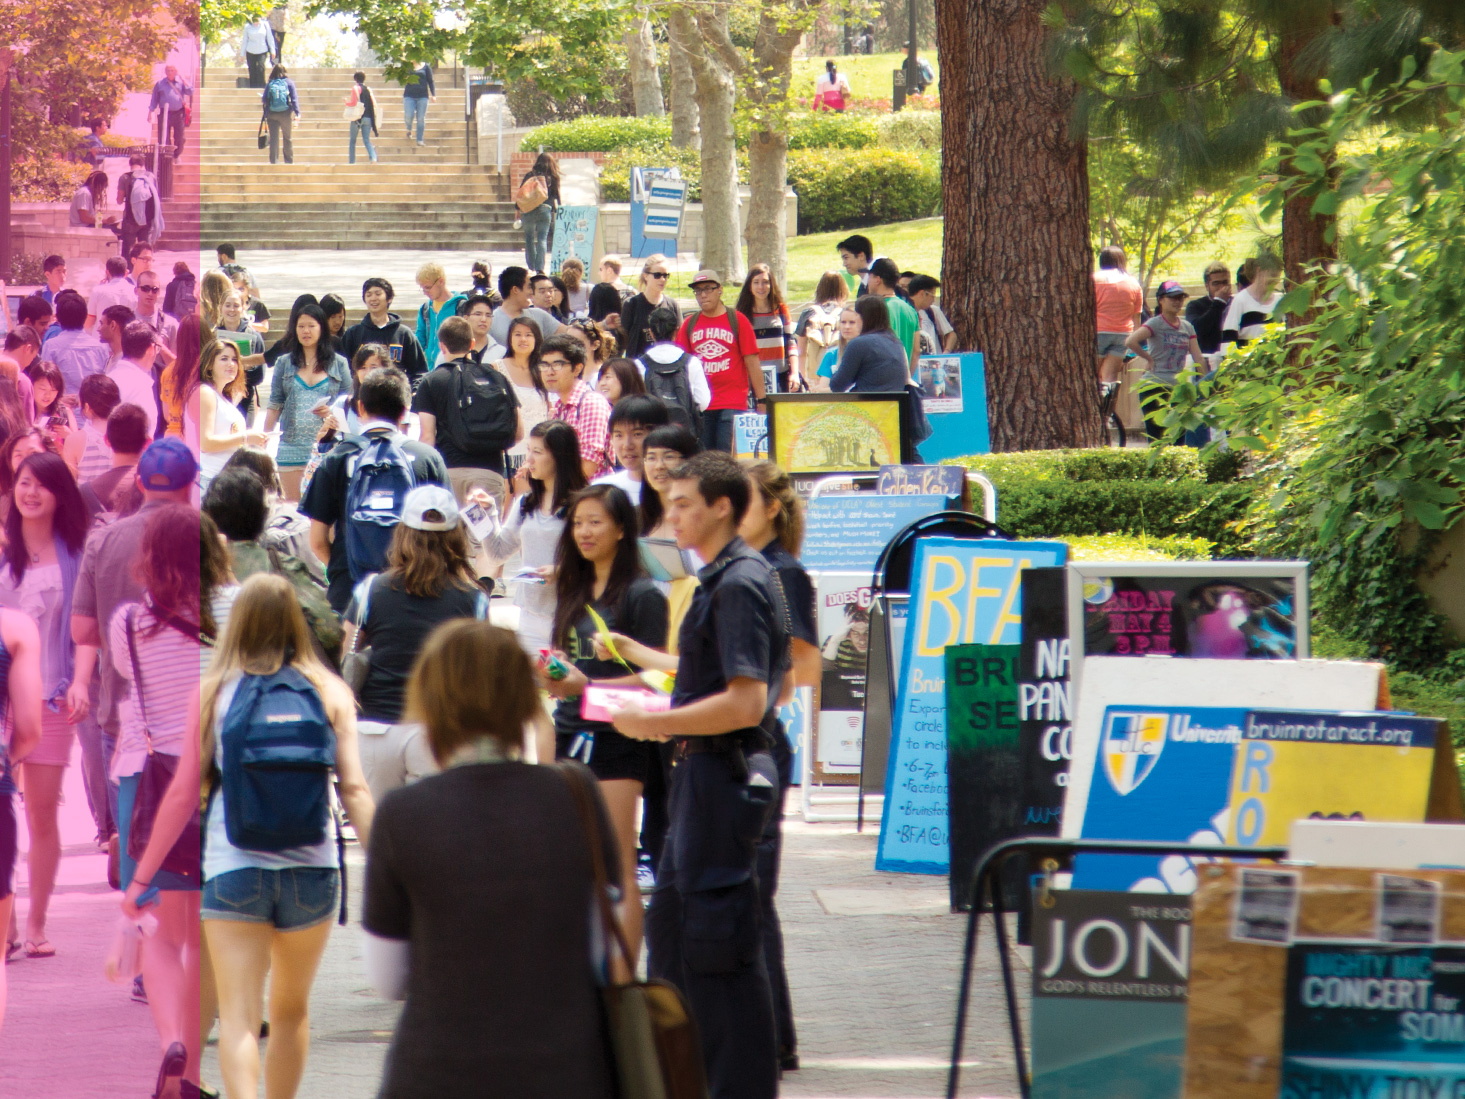 Students make their way down Bruin Walk, passing posters for student clubs and organizations.